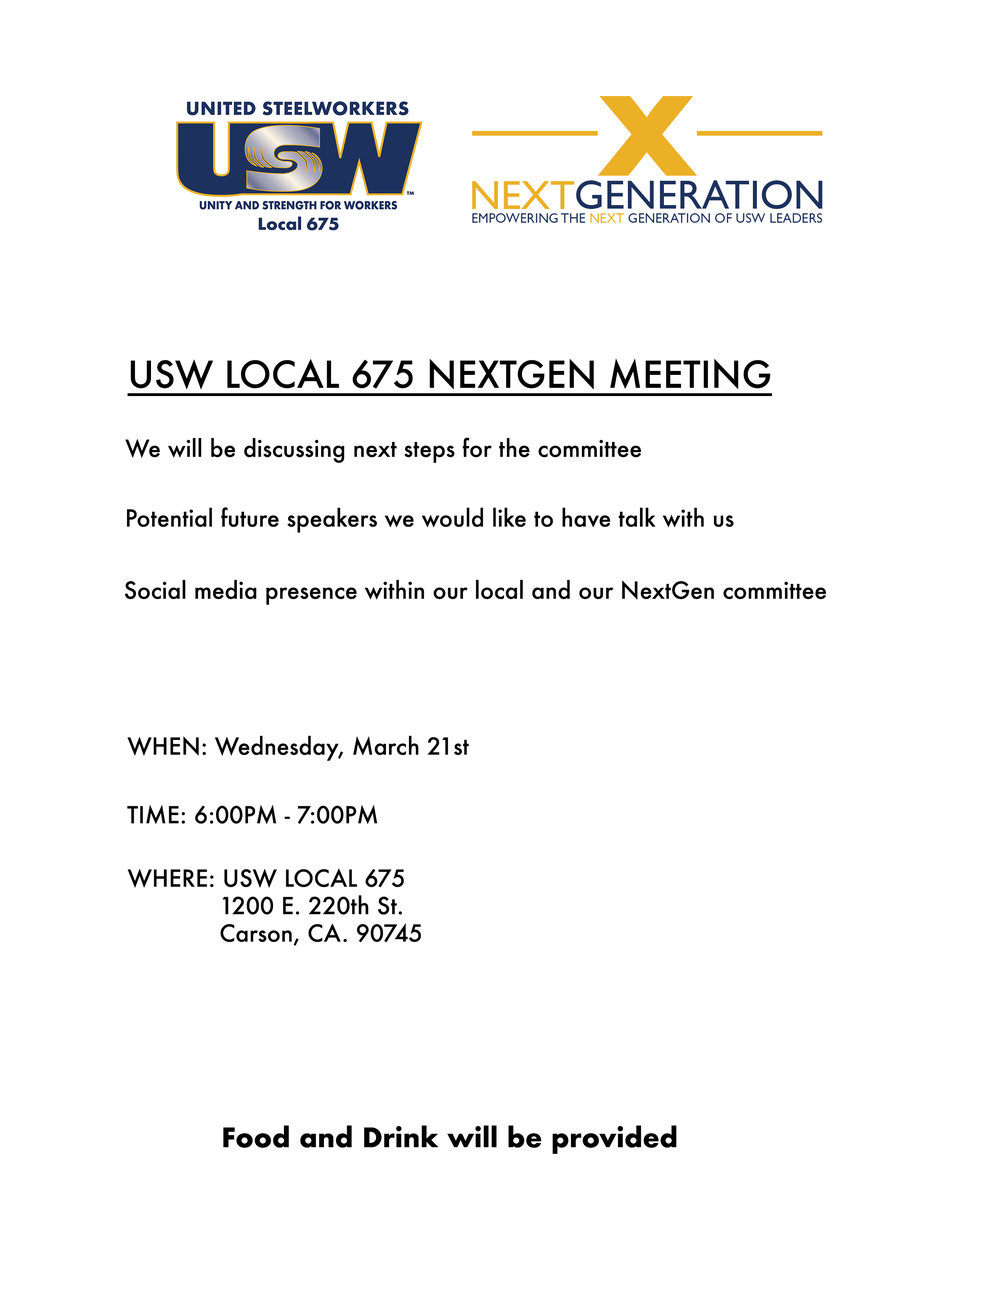 NextGen Meeting Flyer 3.21.jpg